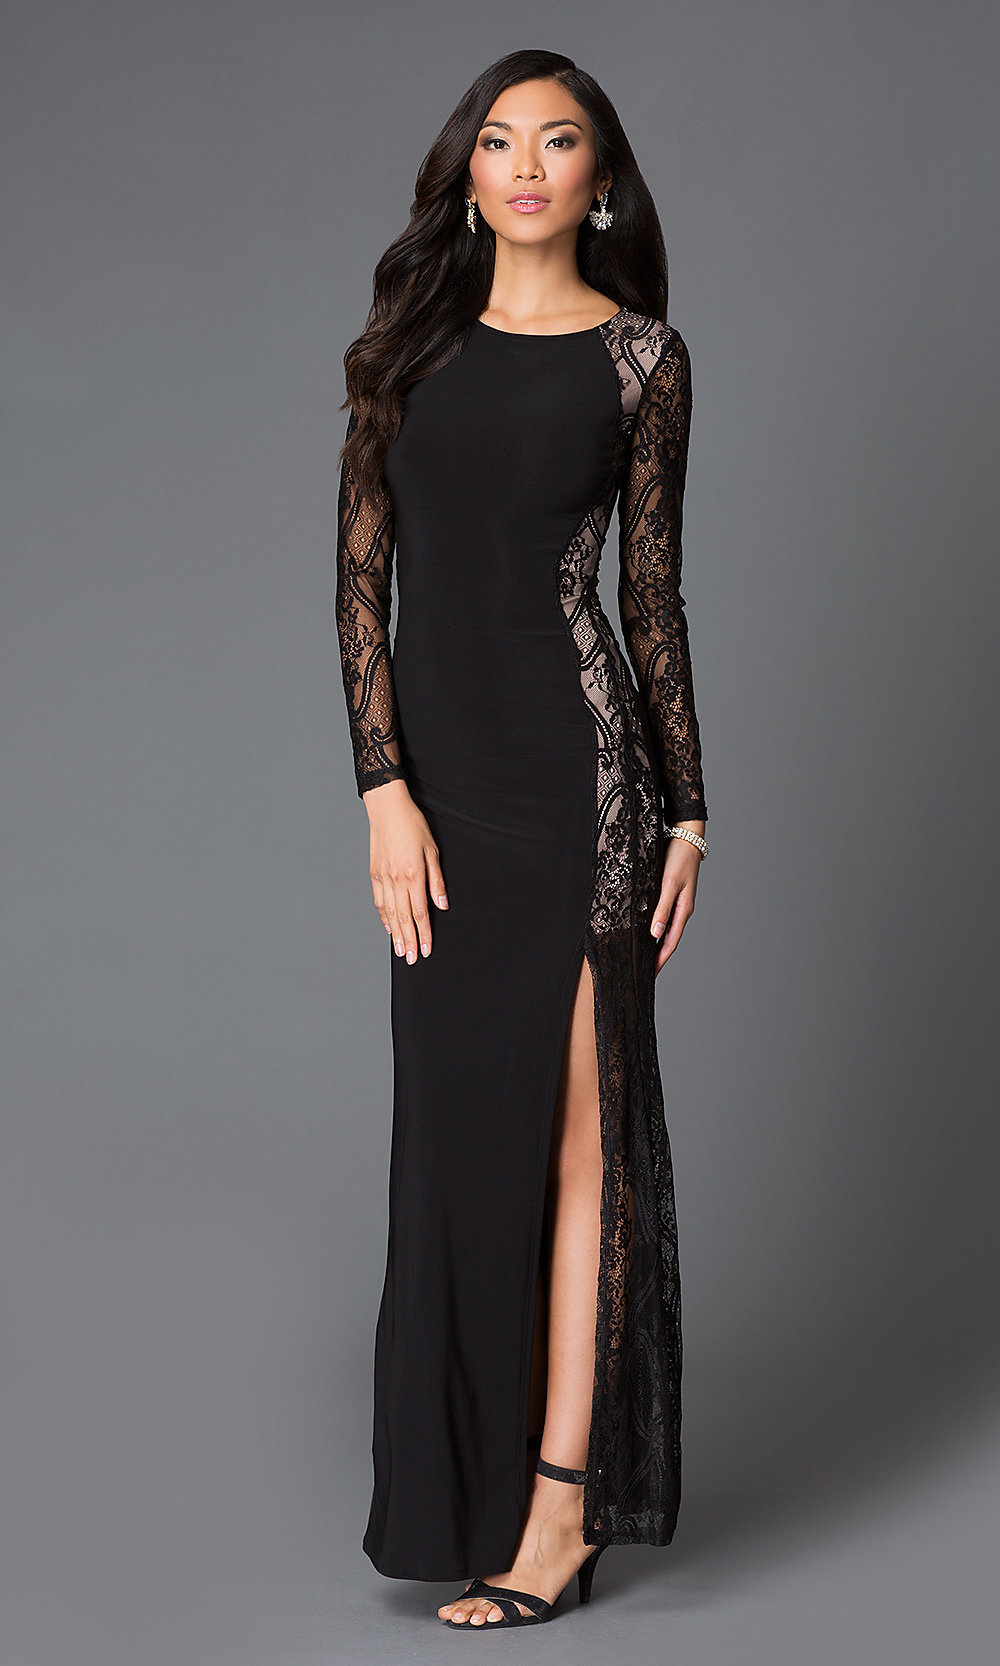 Black Long Sleeve Floor Length Lace Dress PromGirl